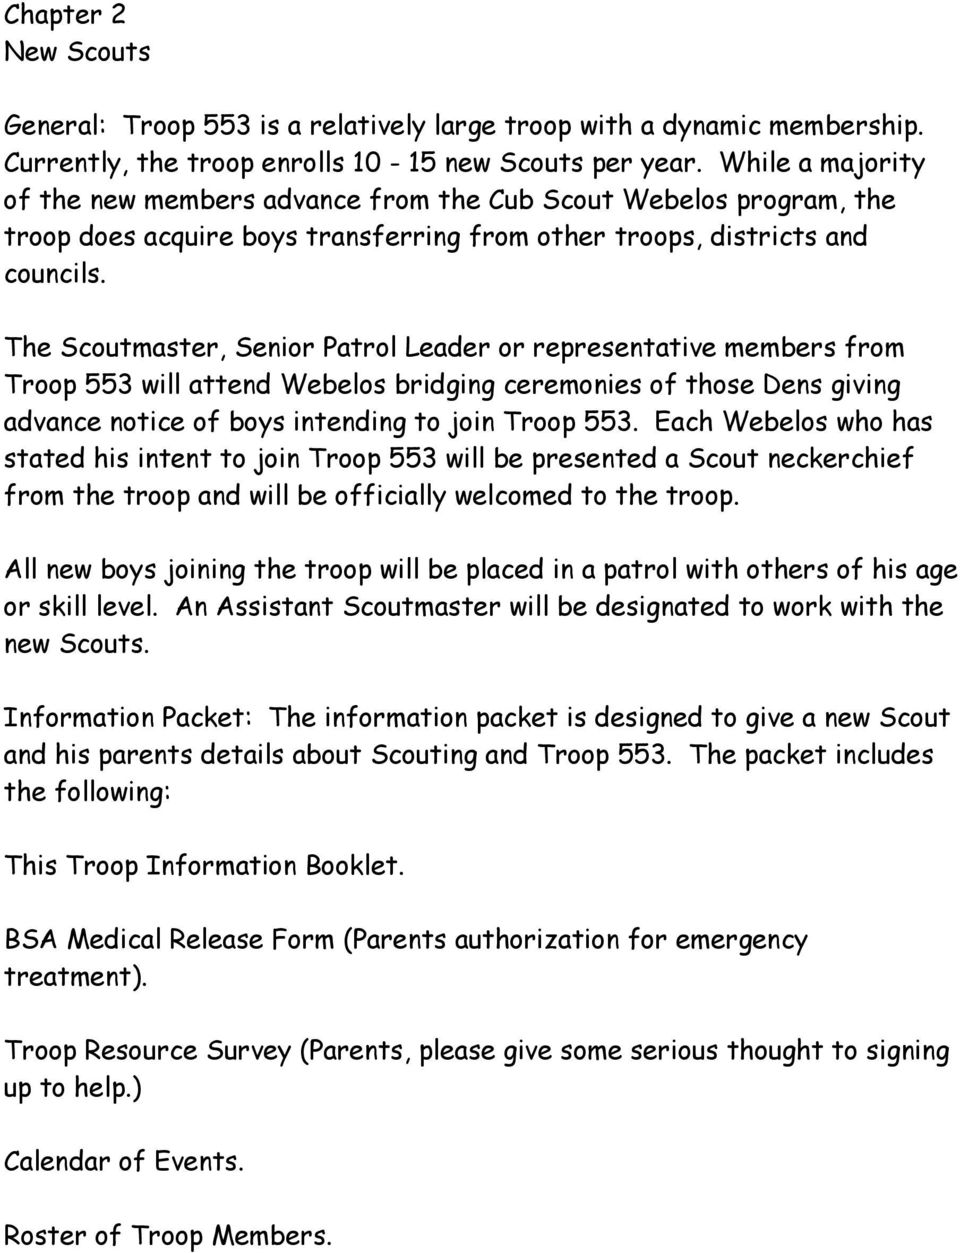 The Scoutmaster, Senior Patrol Leader or representative members from Troop 553 will attend Webelos bridging ceremonies of those Dens giving advance notice of boys intending to join Troop 553.